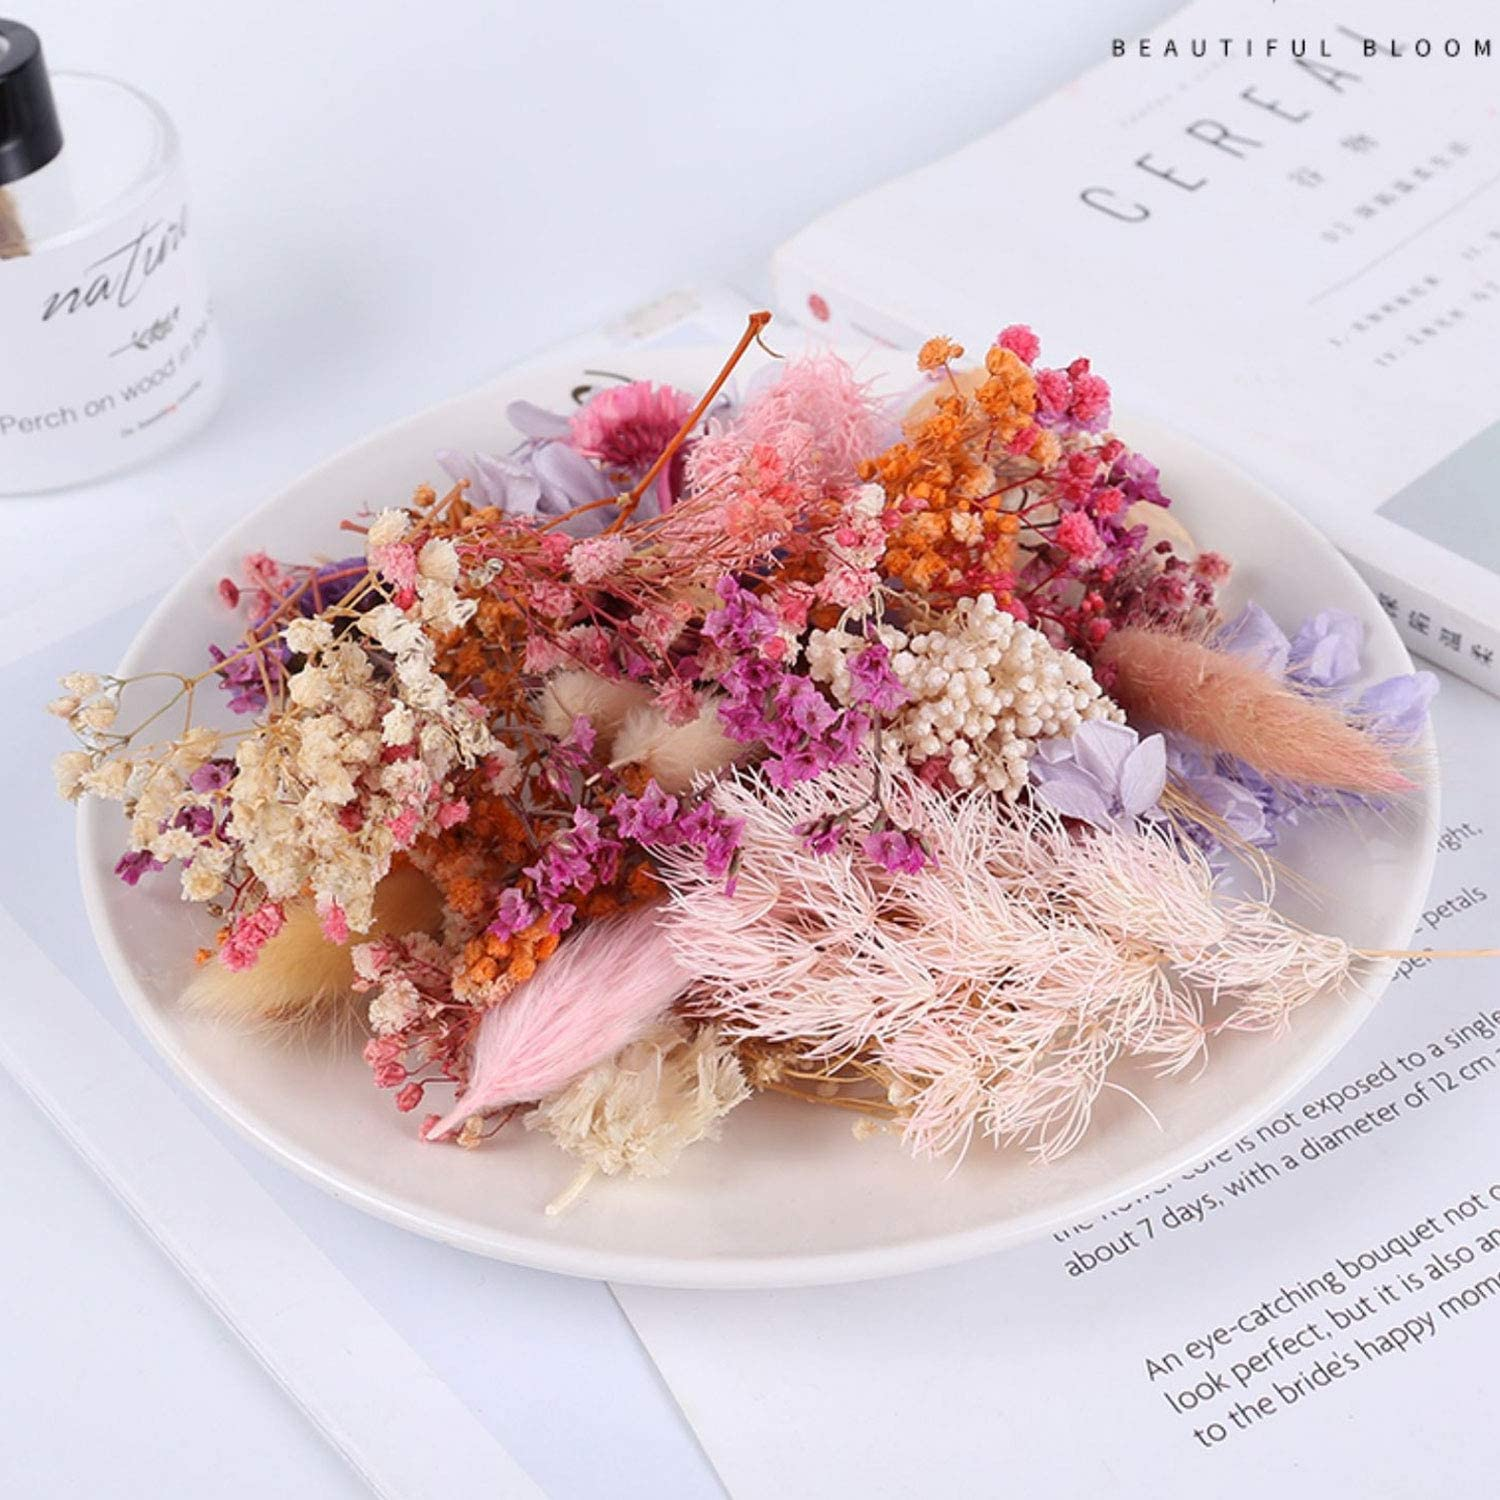 Pink Dried Flowers Real Natural Dried Flowers for Art Craft Mixed Multiple Colorful Dried Flowers for Soap Candle Scrapbooking DIY Resin